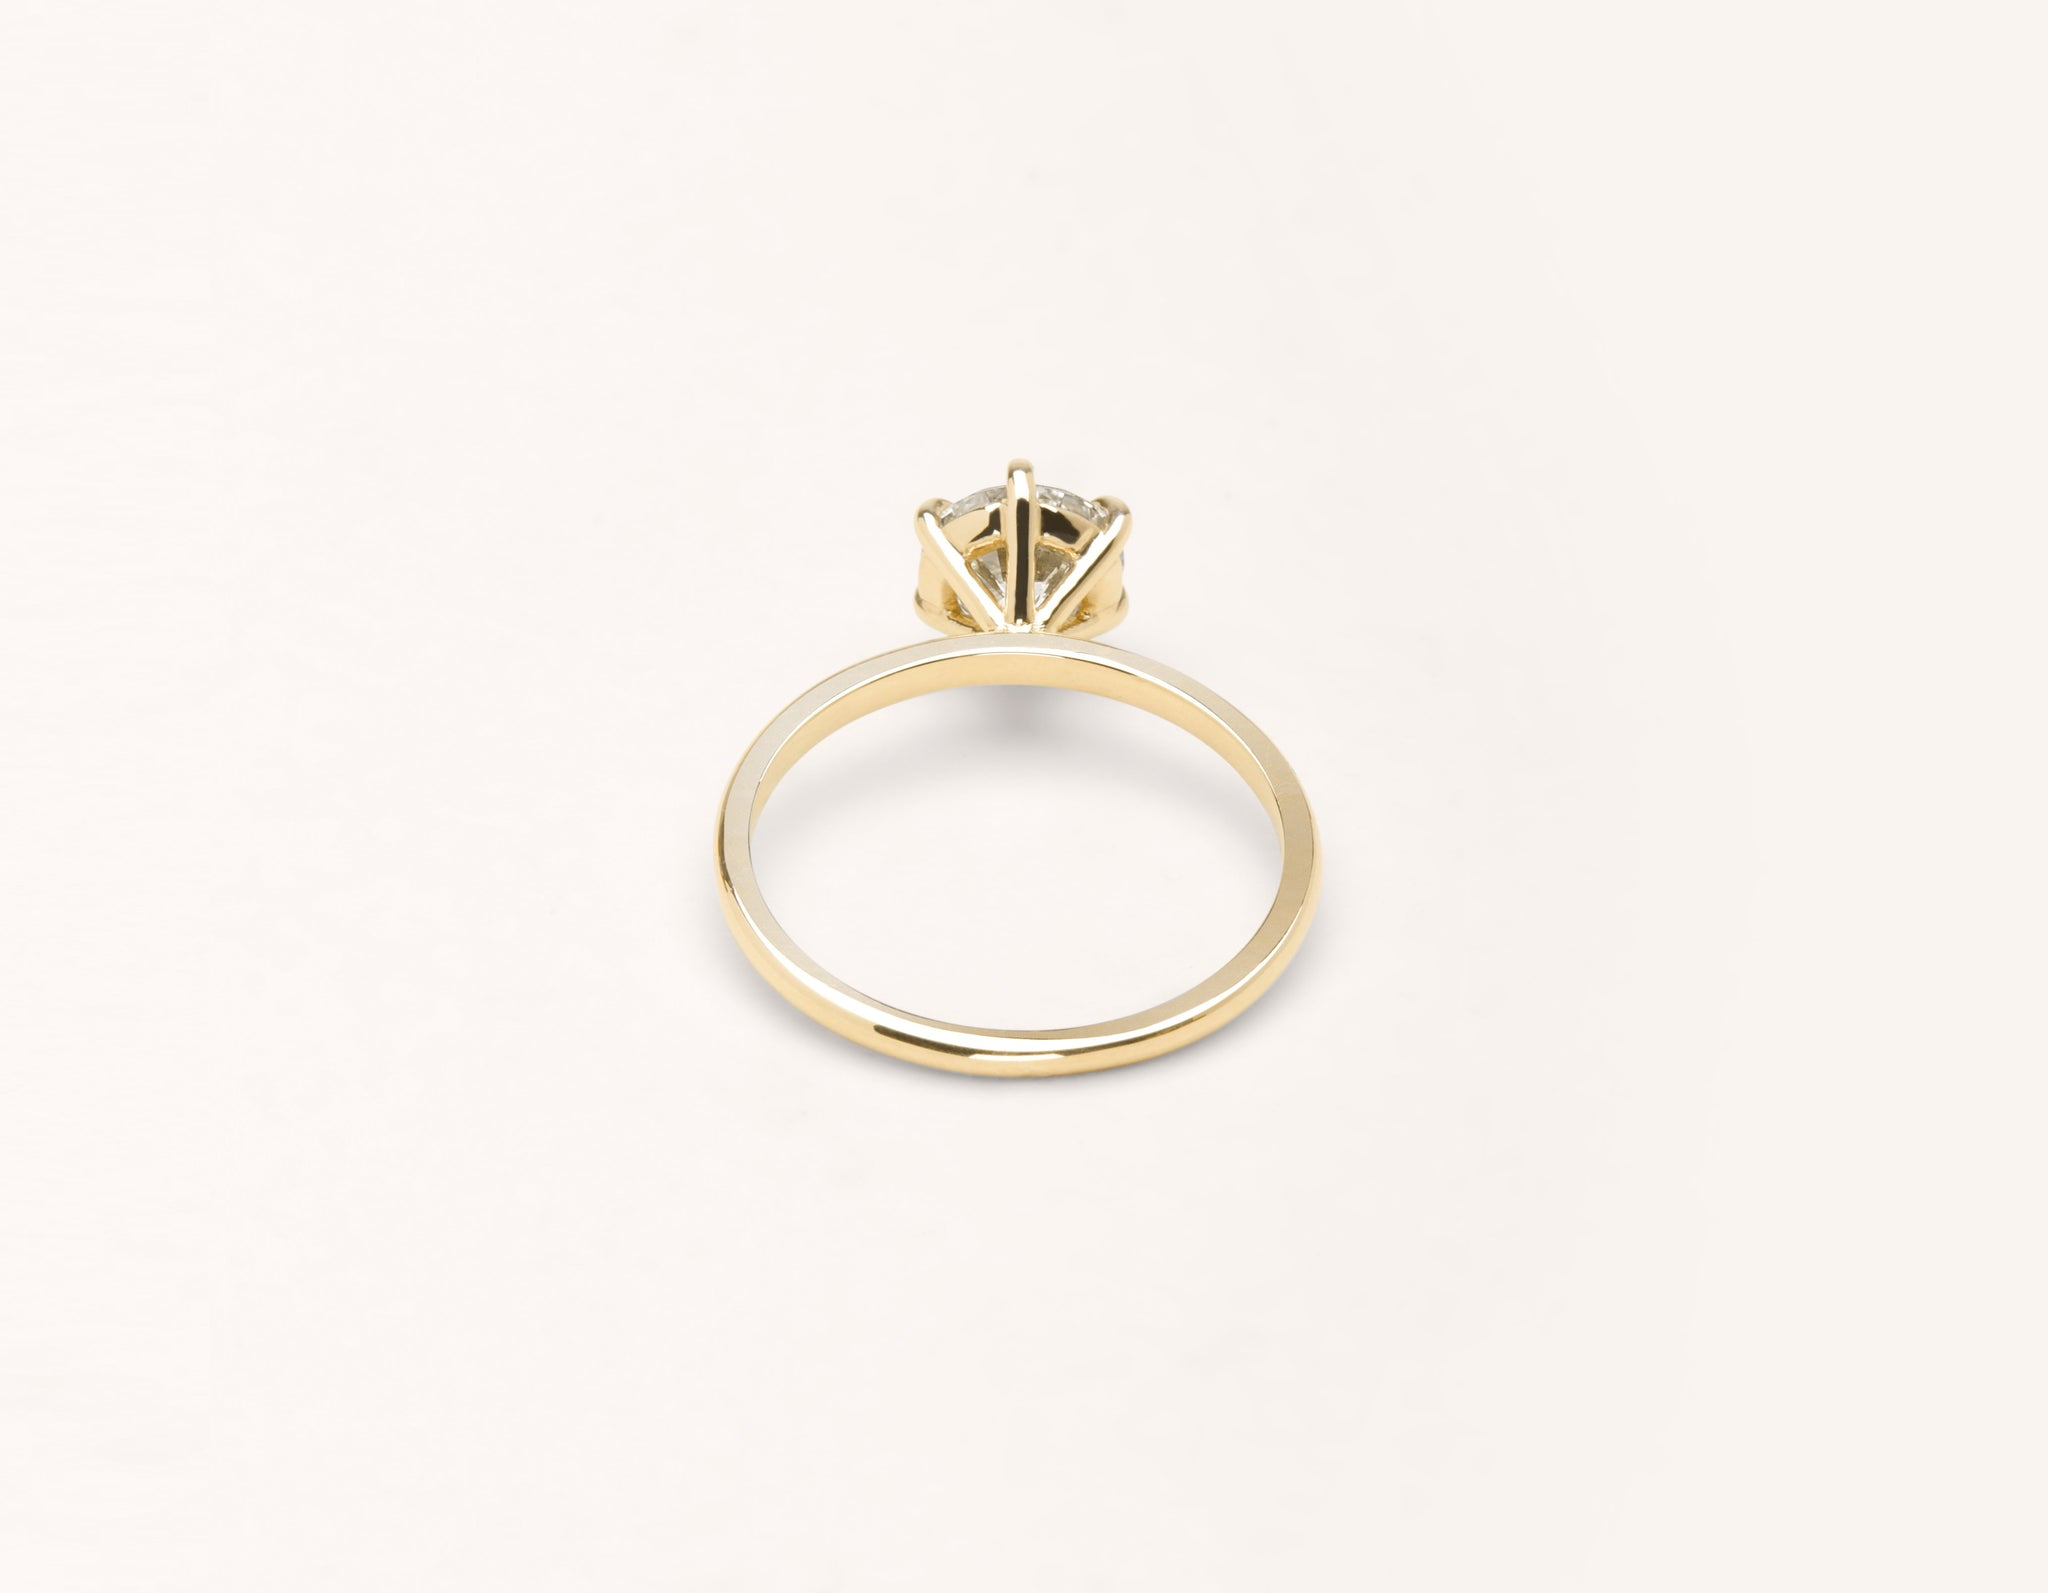 Vrai & Oro 18k solid yellow gold Diamond engagement ring The Solitaire simple classic band 6 prong setting